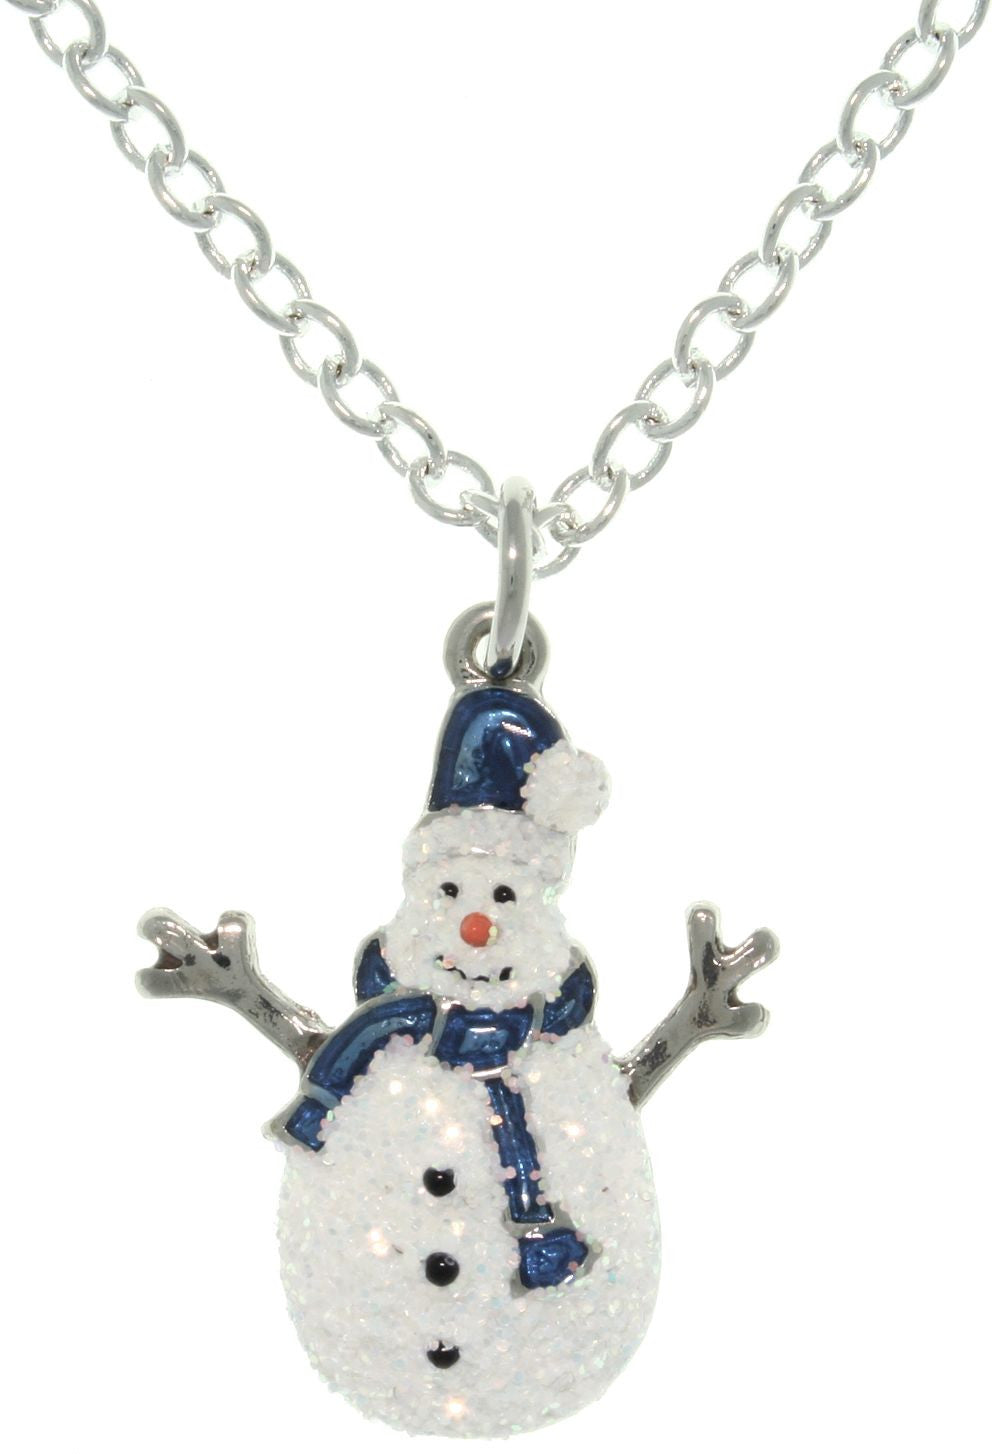 Jewelry Trends Pewter Enamel Holiday Glittered Snowman Charm with 18 Inch Chain Necklace Christmas Gift